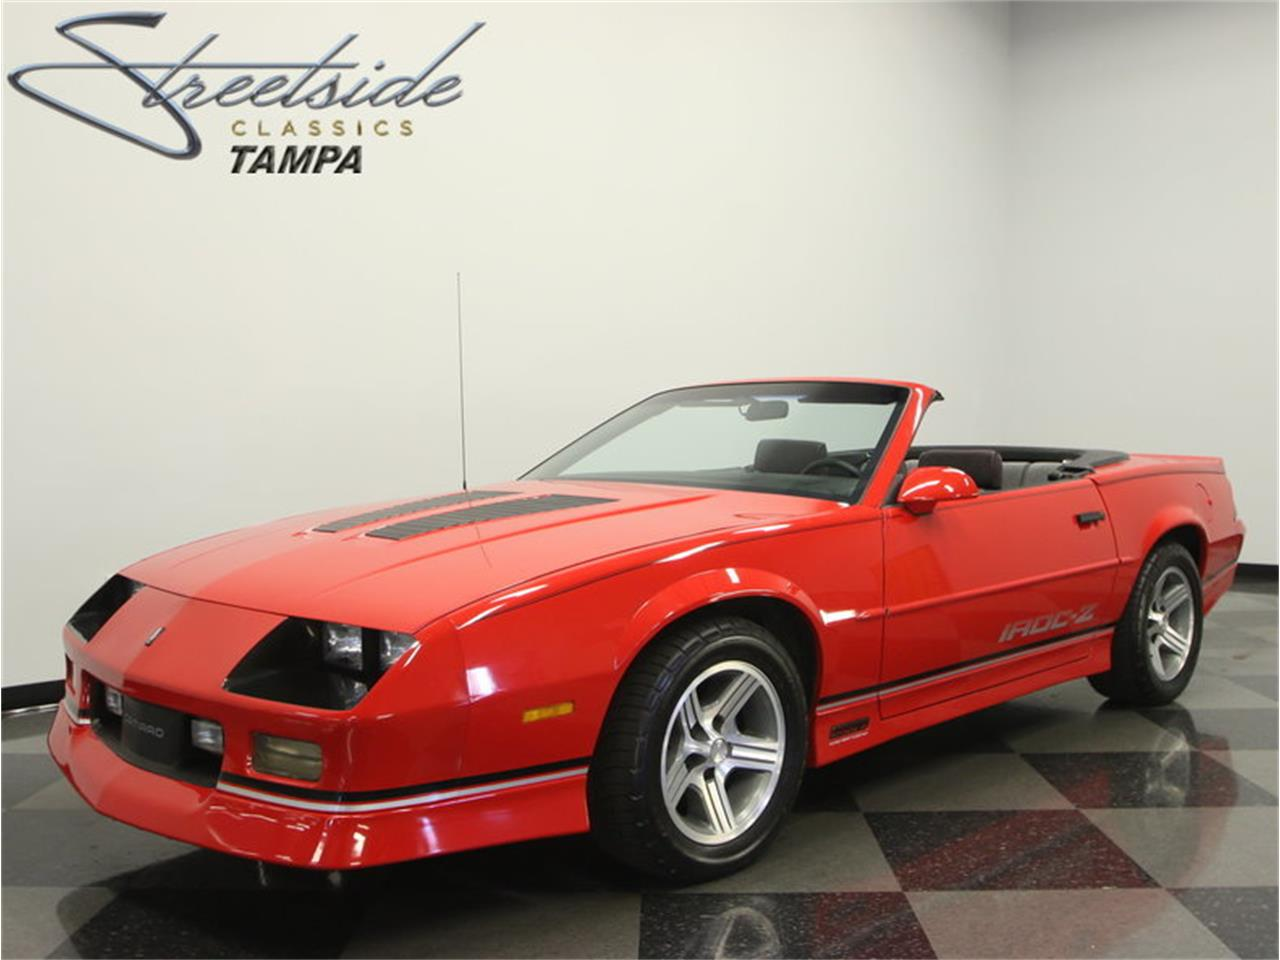 1990 chevrolet camaro iroc z 28 convertible for sale classiccars com cc 990447 1990 chevrolet camaro iroc z 28